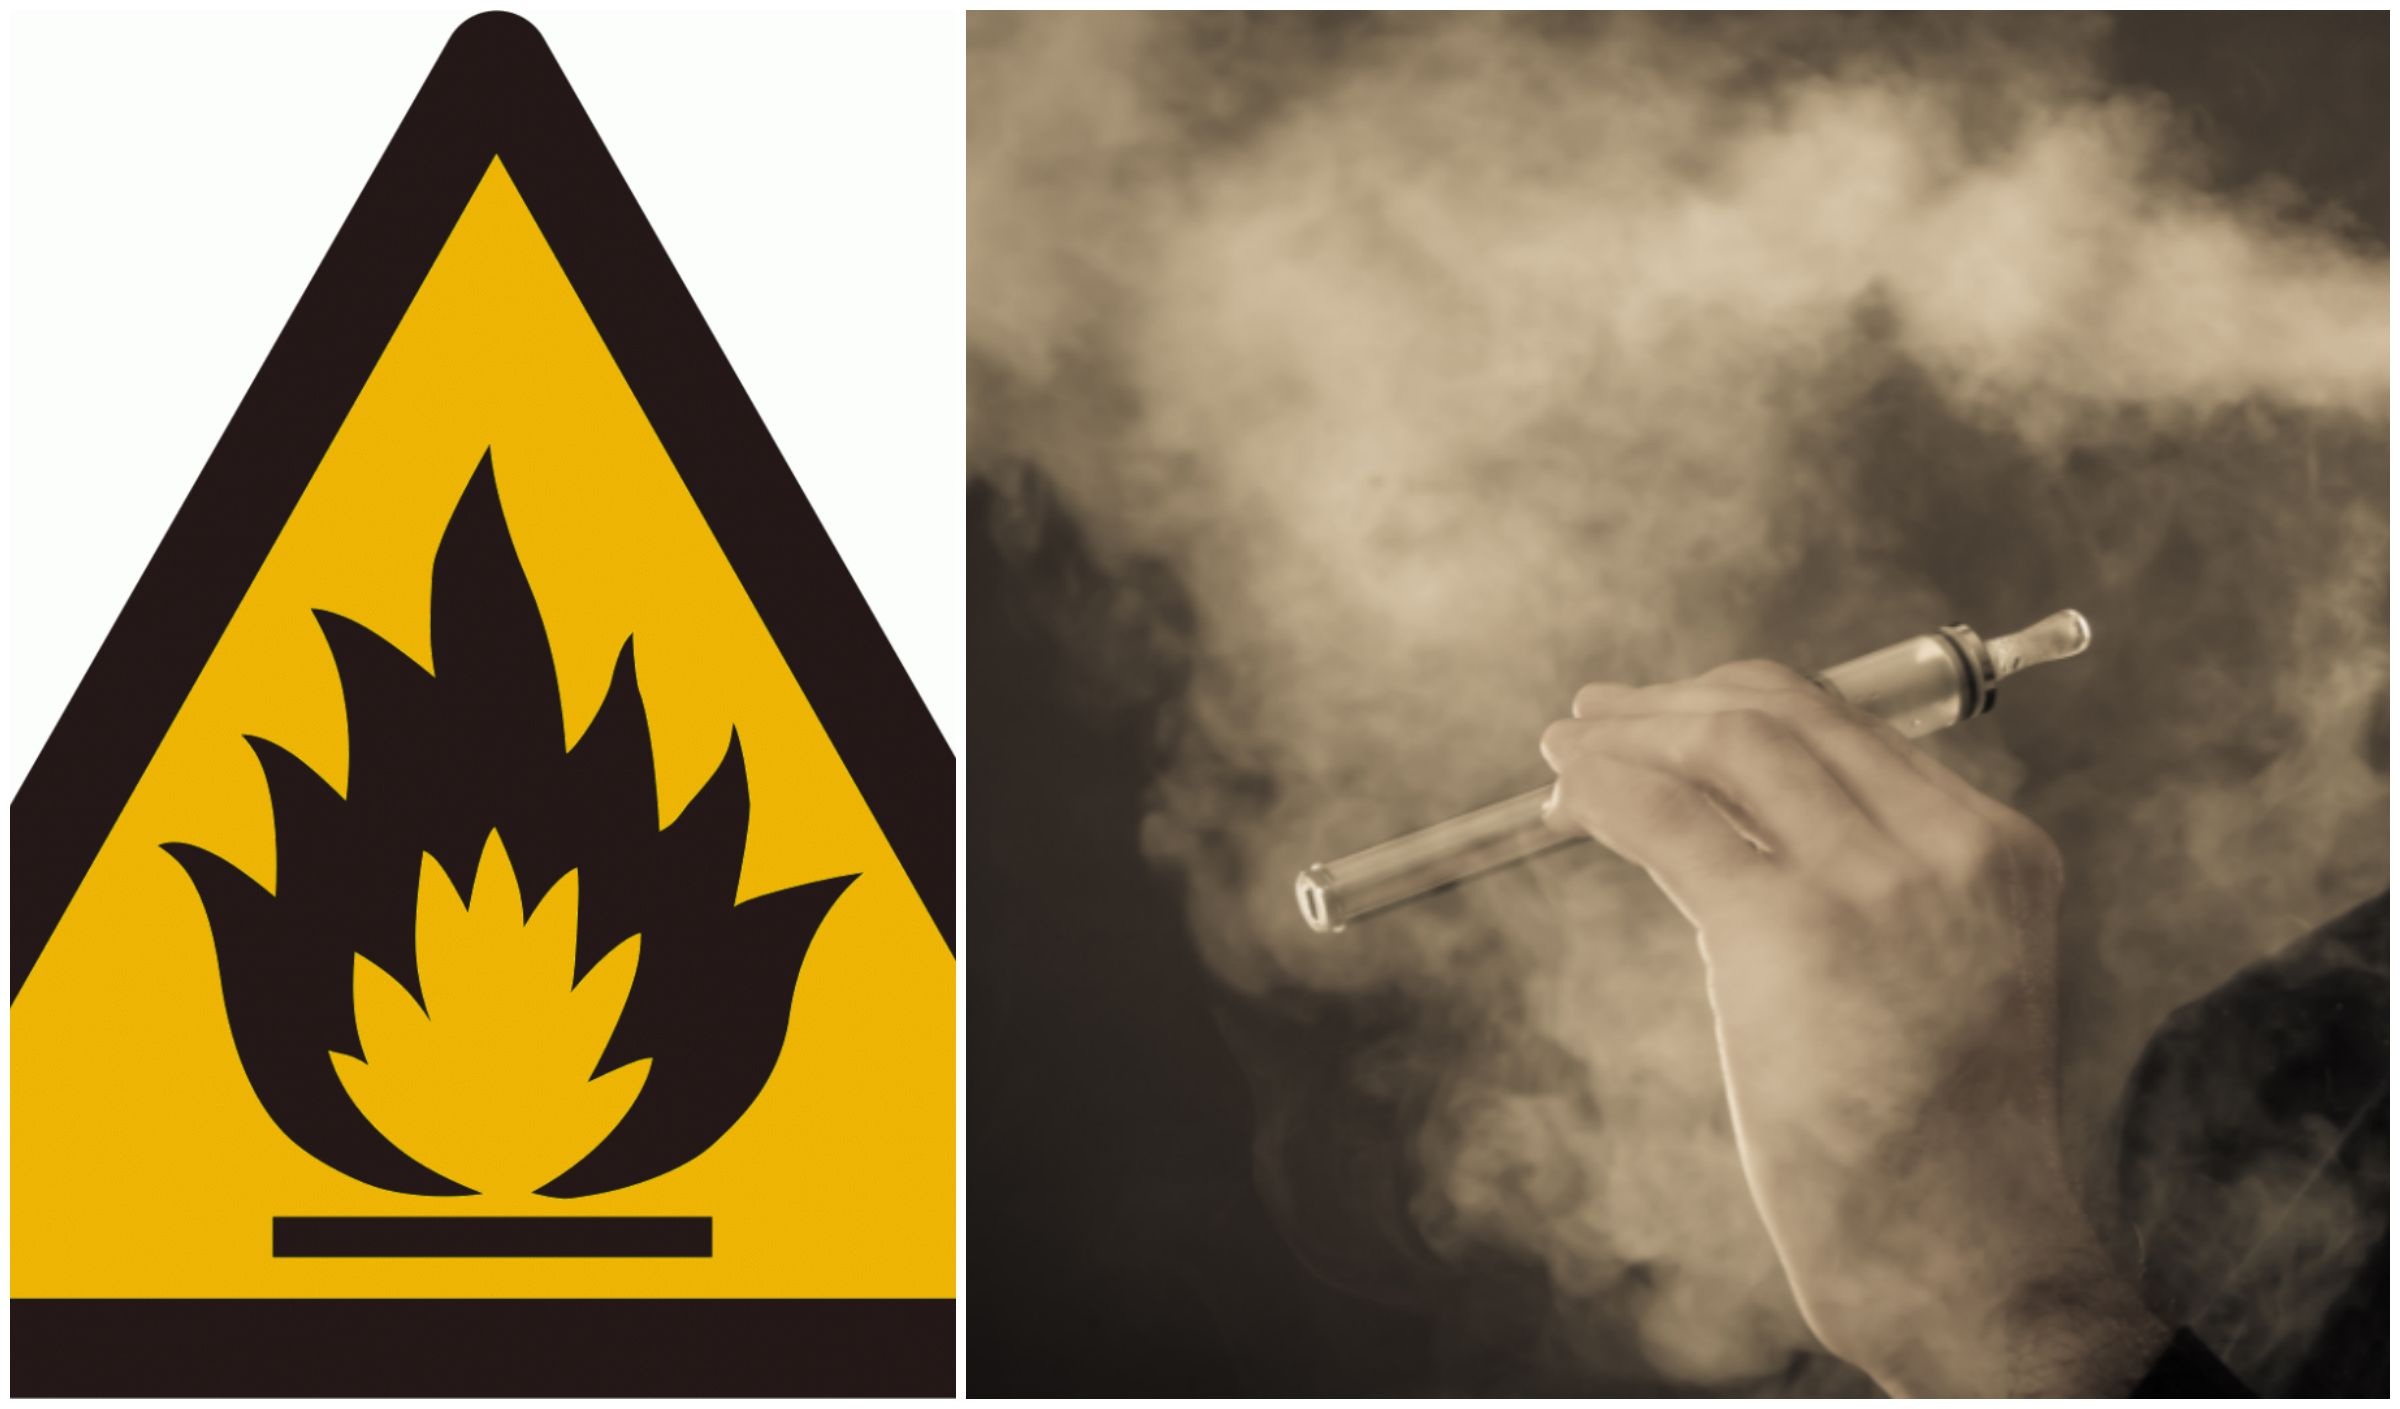 What are the risks of explosion for e-cigarettes?